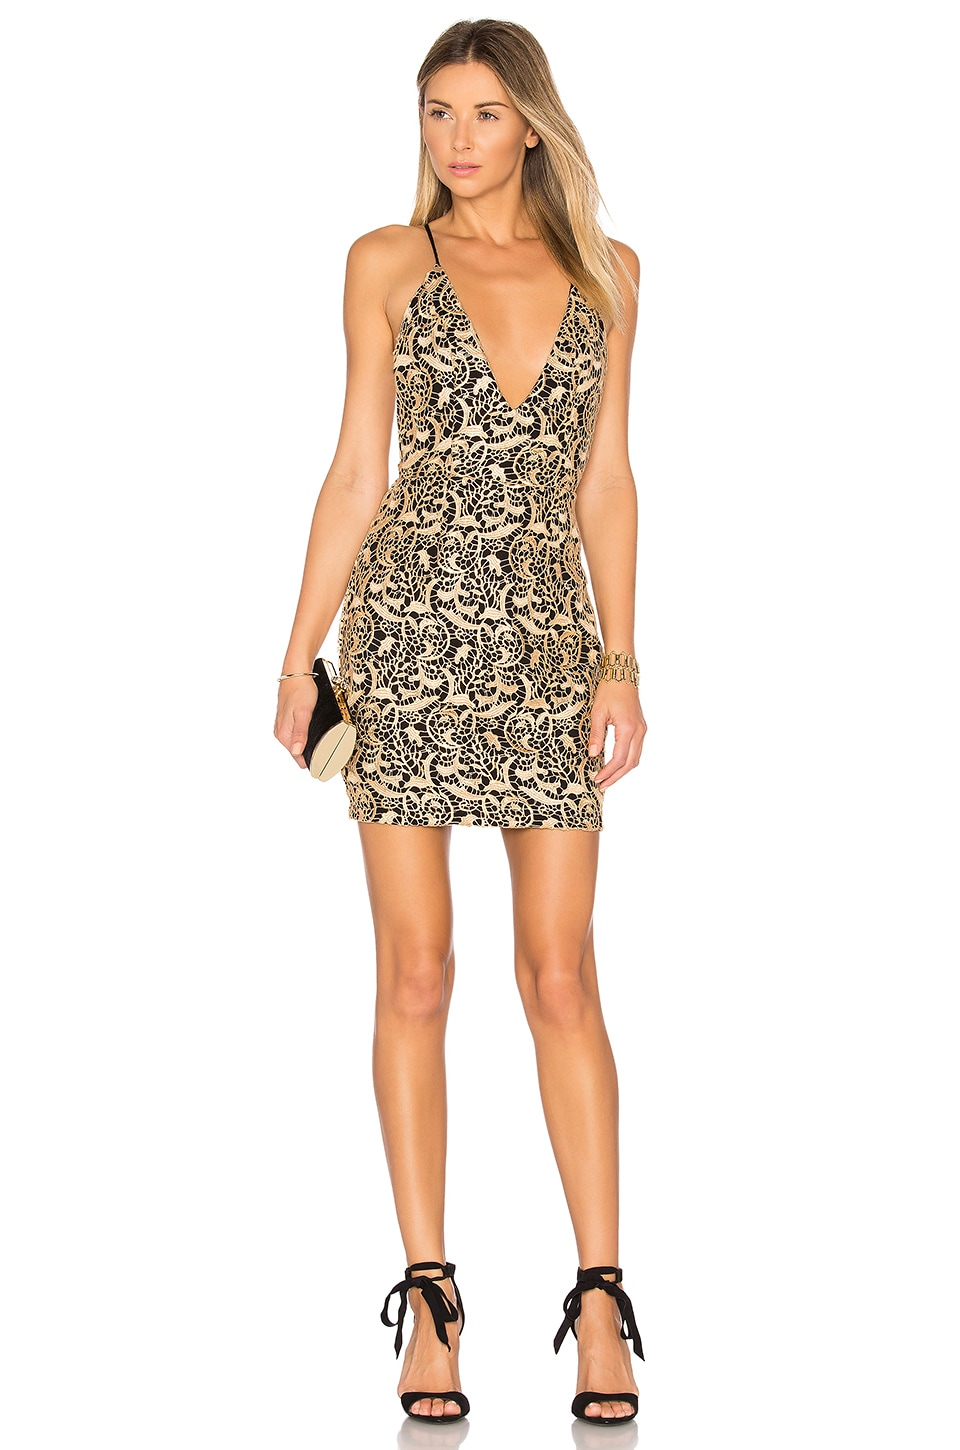 Amari Lace Mini Dress by By The Way.